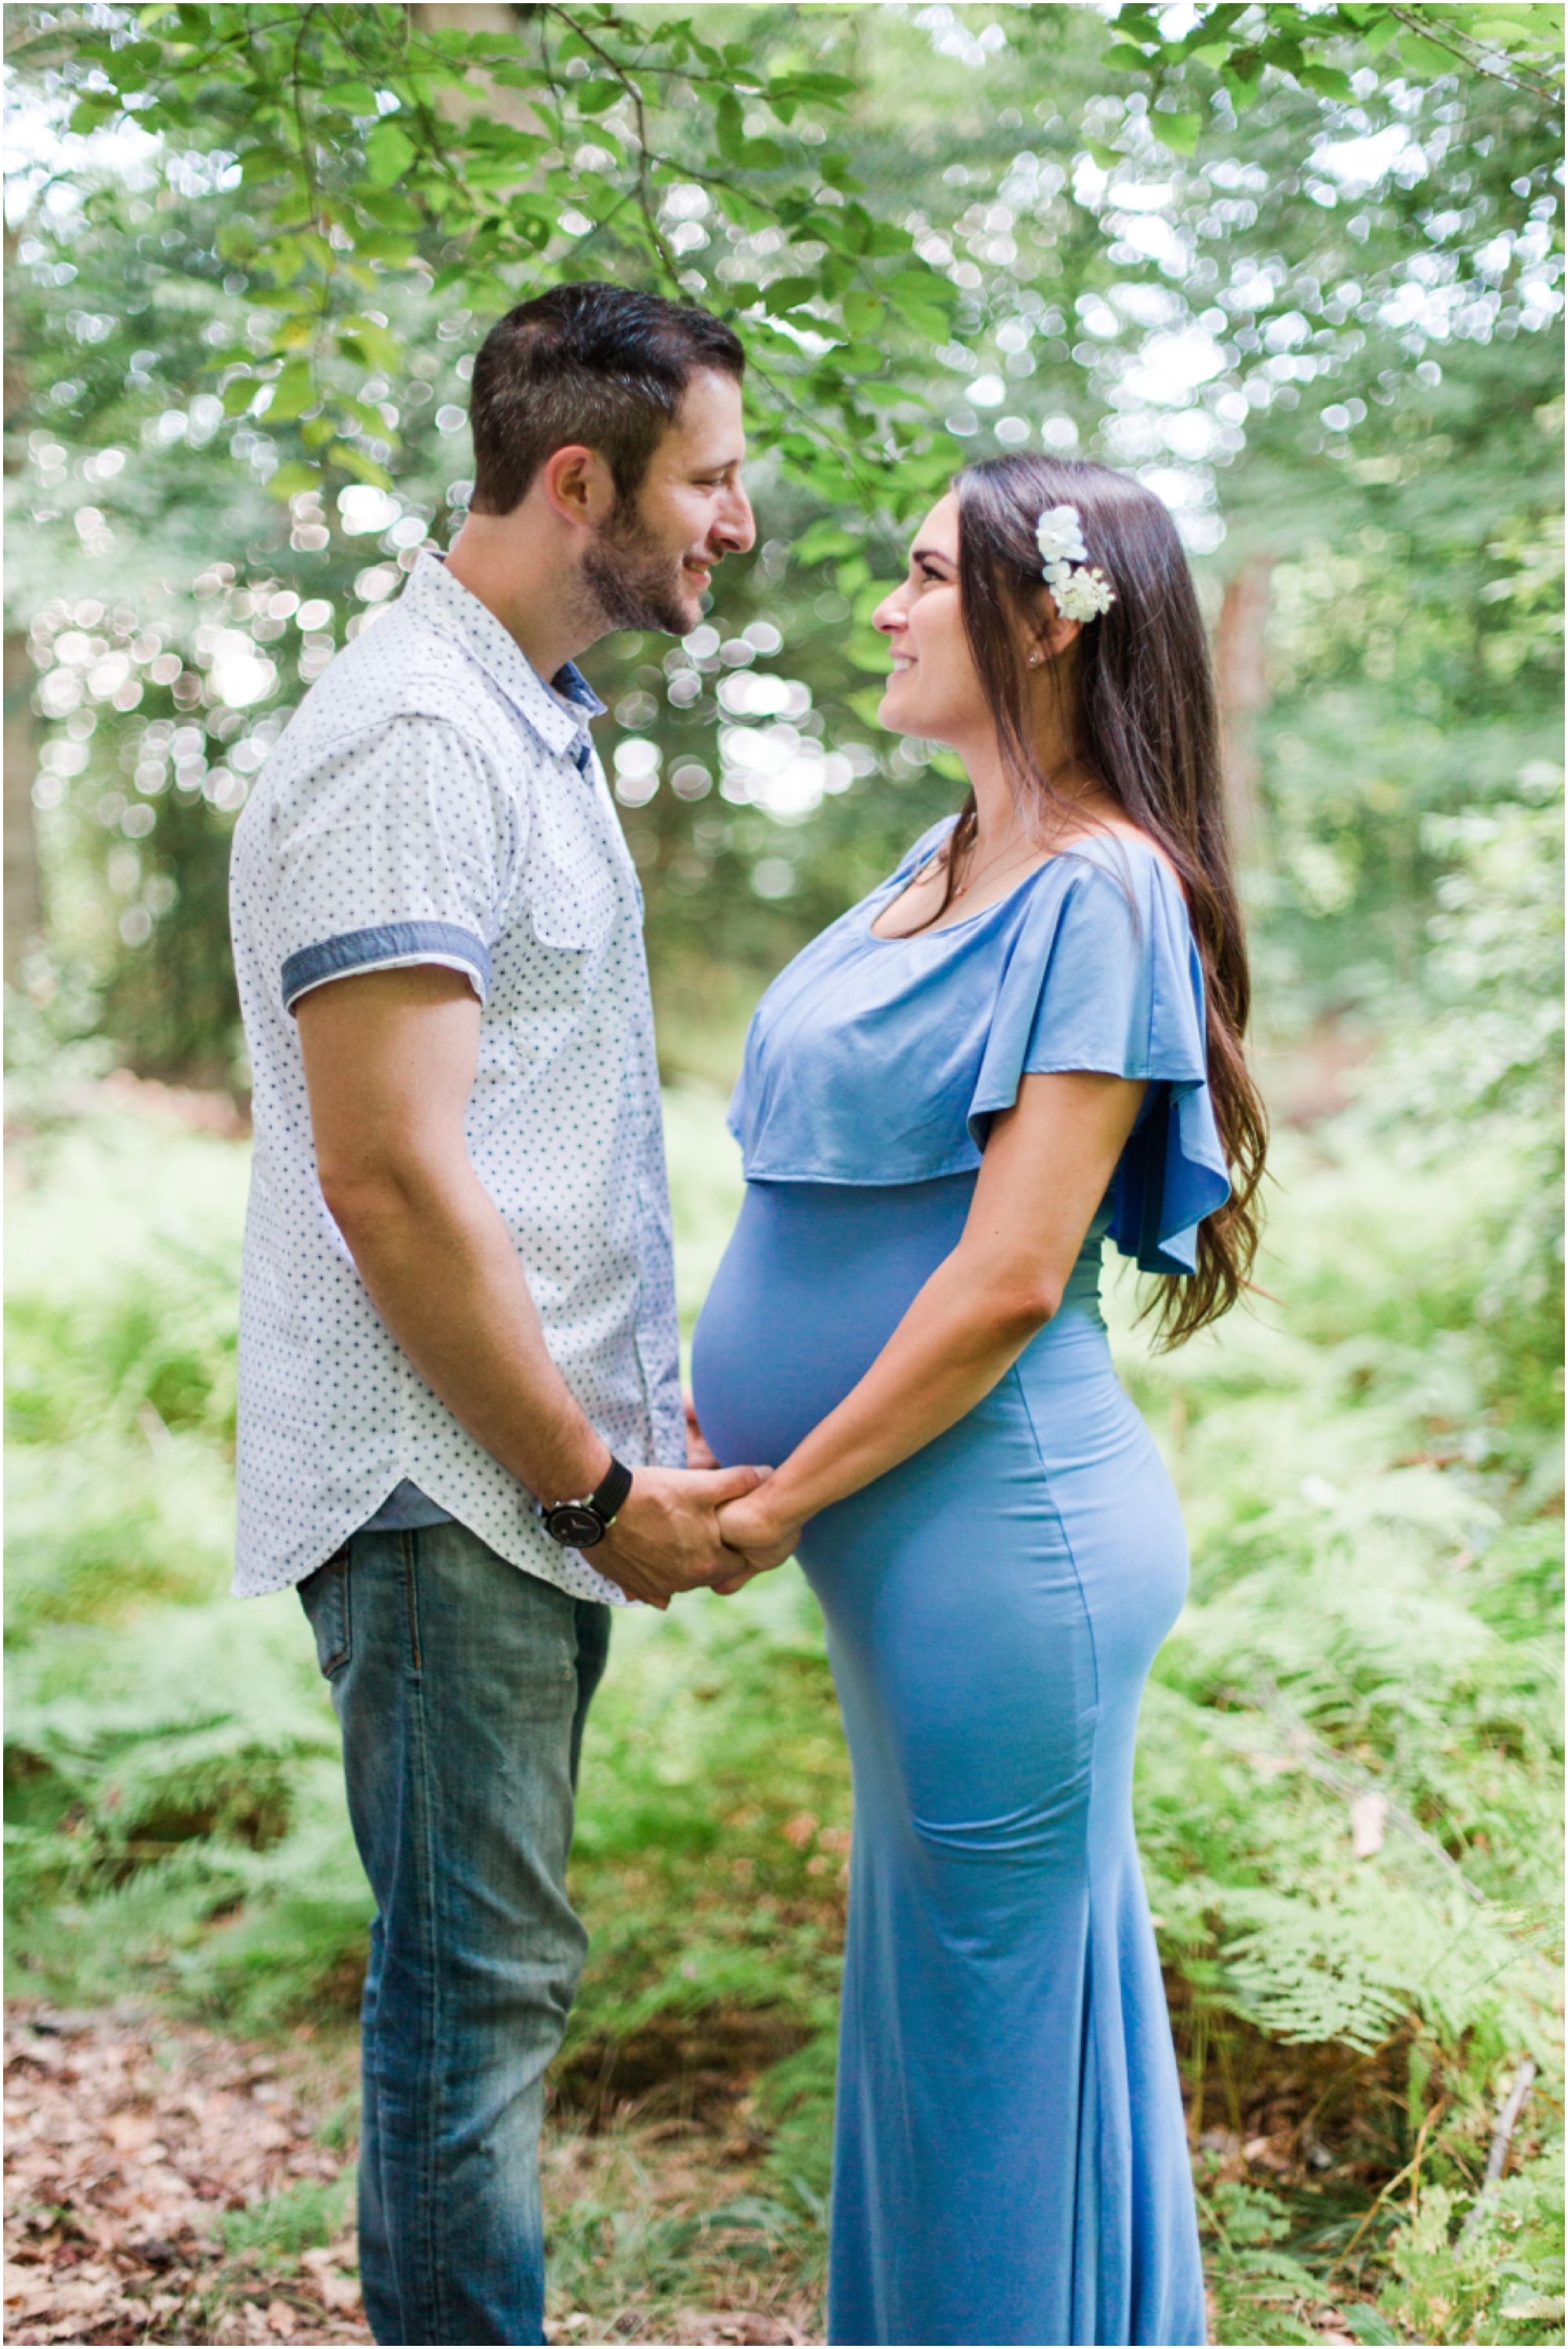 Natural light maternity portraits by Briana Calderon Photography based in the Greater Seattle & Tacoma, WA_0761.jpg